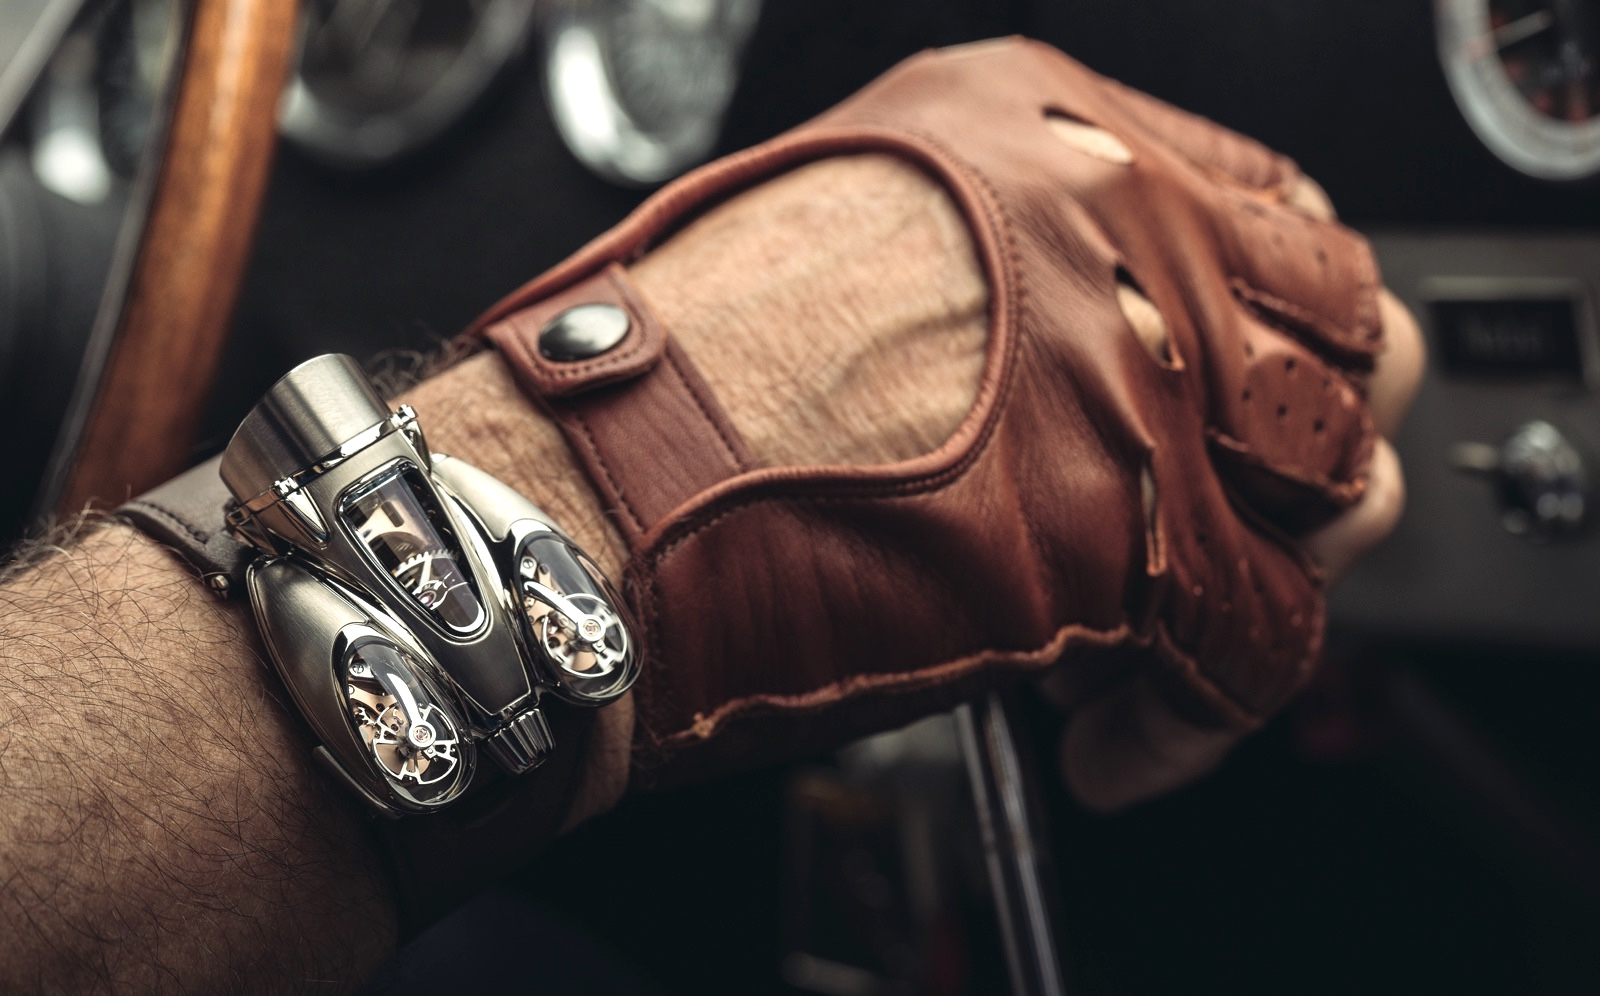 MB&F HM9 Flow Road Wrist Shot